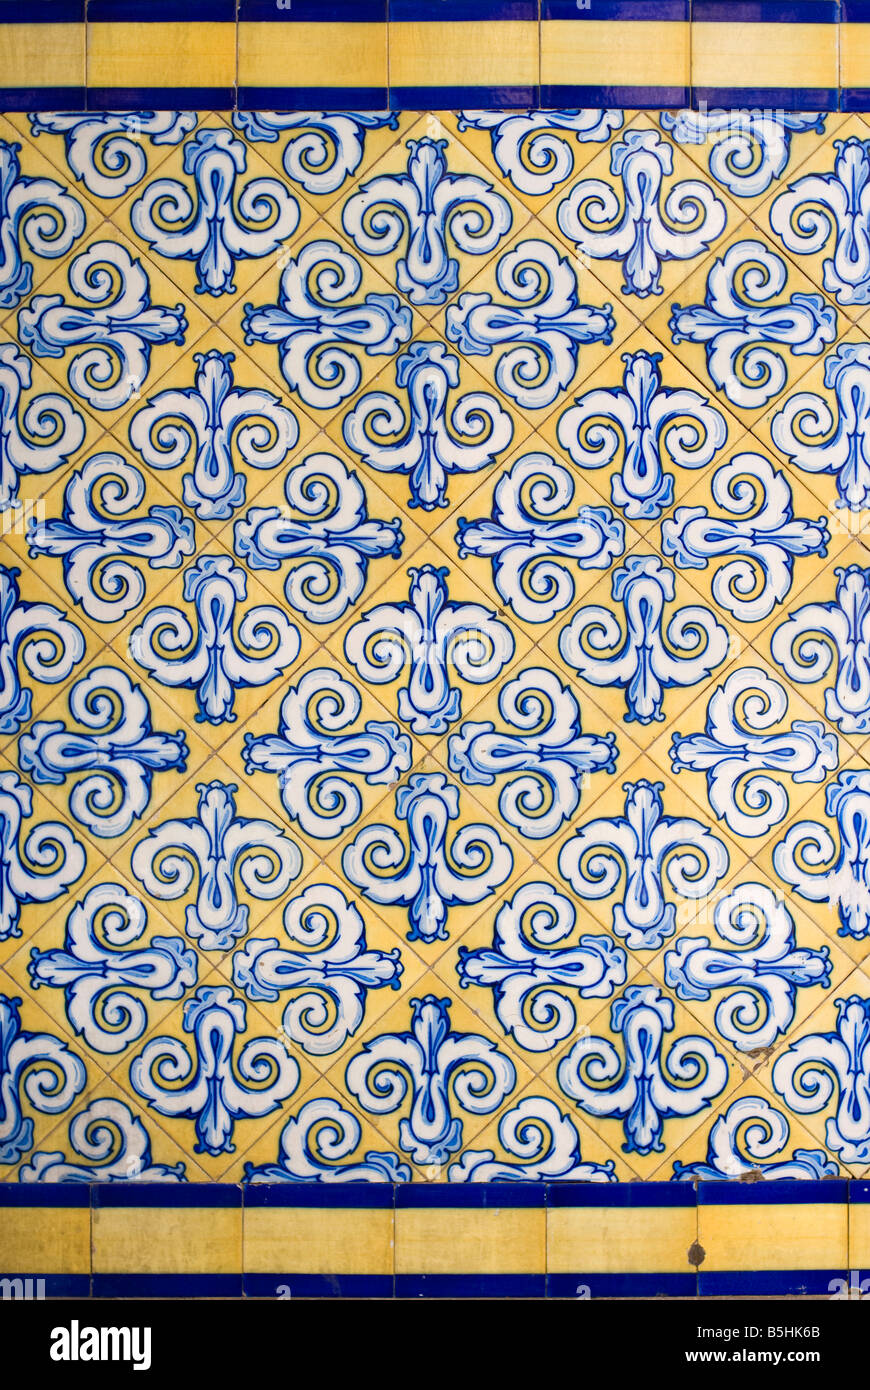 Detail of hand painted tiles or Azulejos on the central market Mercado Central in the historical city centre of - Stock Image